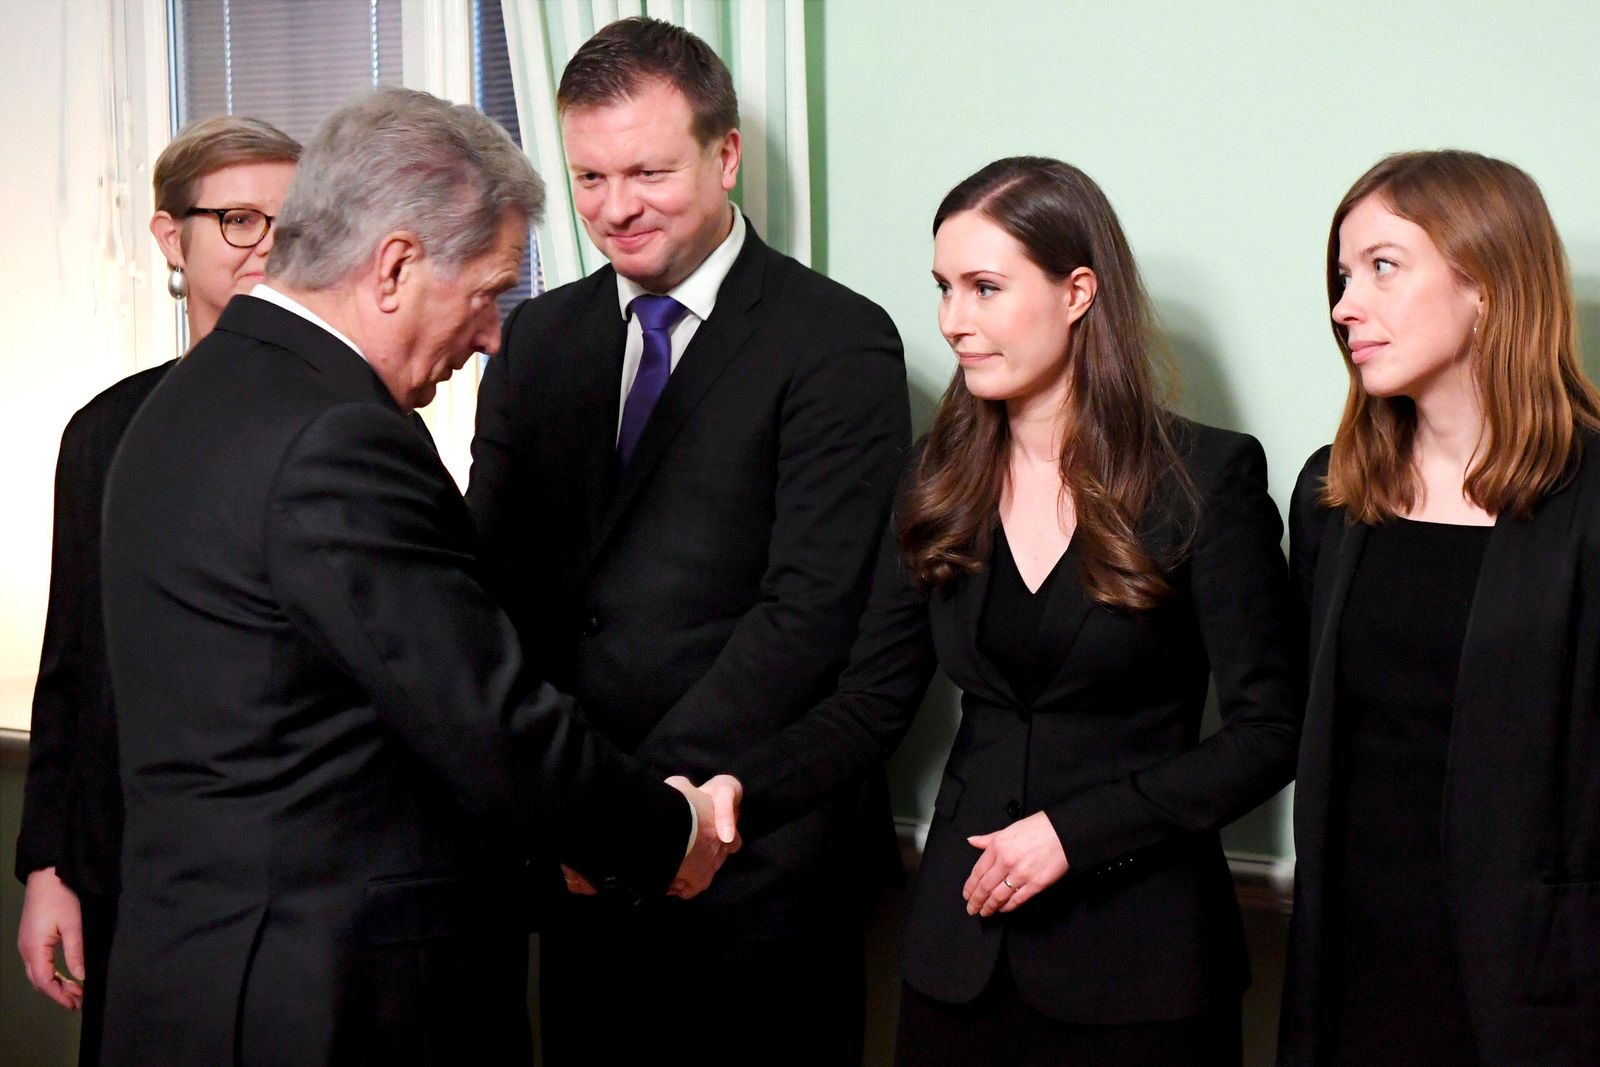 President of Finland Sauli Niinisto, left, greets the new Prime Minister of Finland Sanna Marin, center, before a meeting in Helsinki, Finland on Tuesday Dec. 10, 2019. Finland's parliament chose Sanna Marin as the country's new prime minister Tuesday, making the 34-year-old the world's youngest sitting head of government. (Jussi Nukari/Lehtikuva via AP)